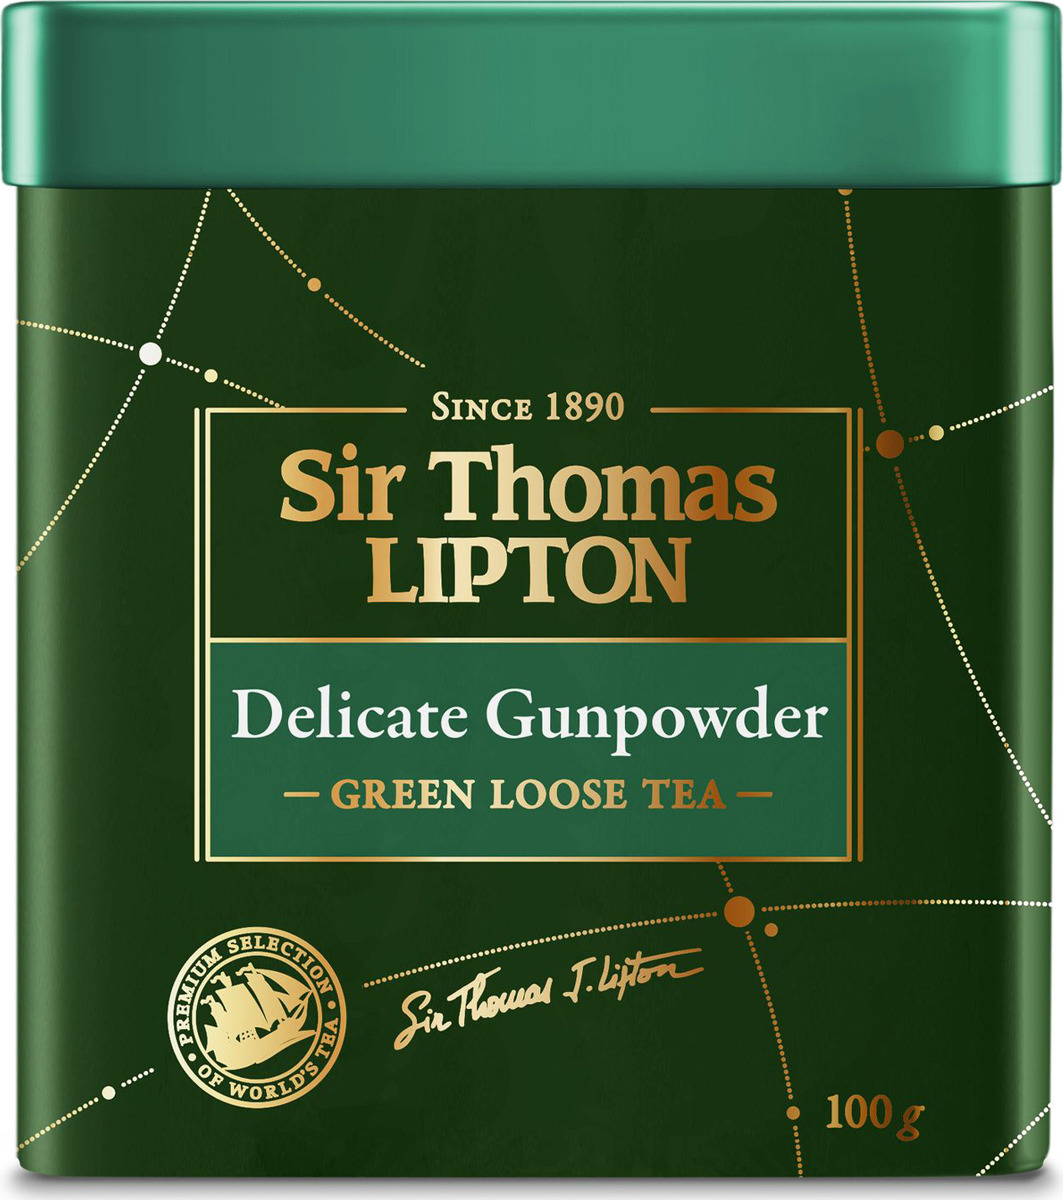 Sir Thomas Lipton Delicate Gunpowder чай зеленый листовой, 100 г delicate cosmetic brush 12pcs